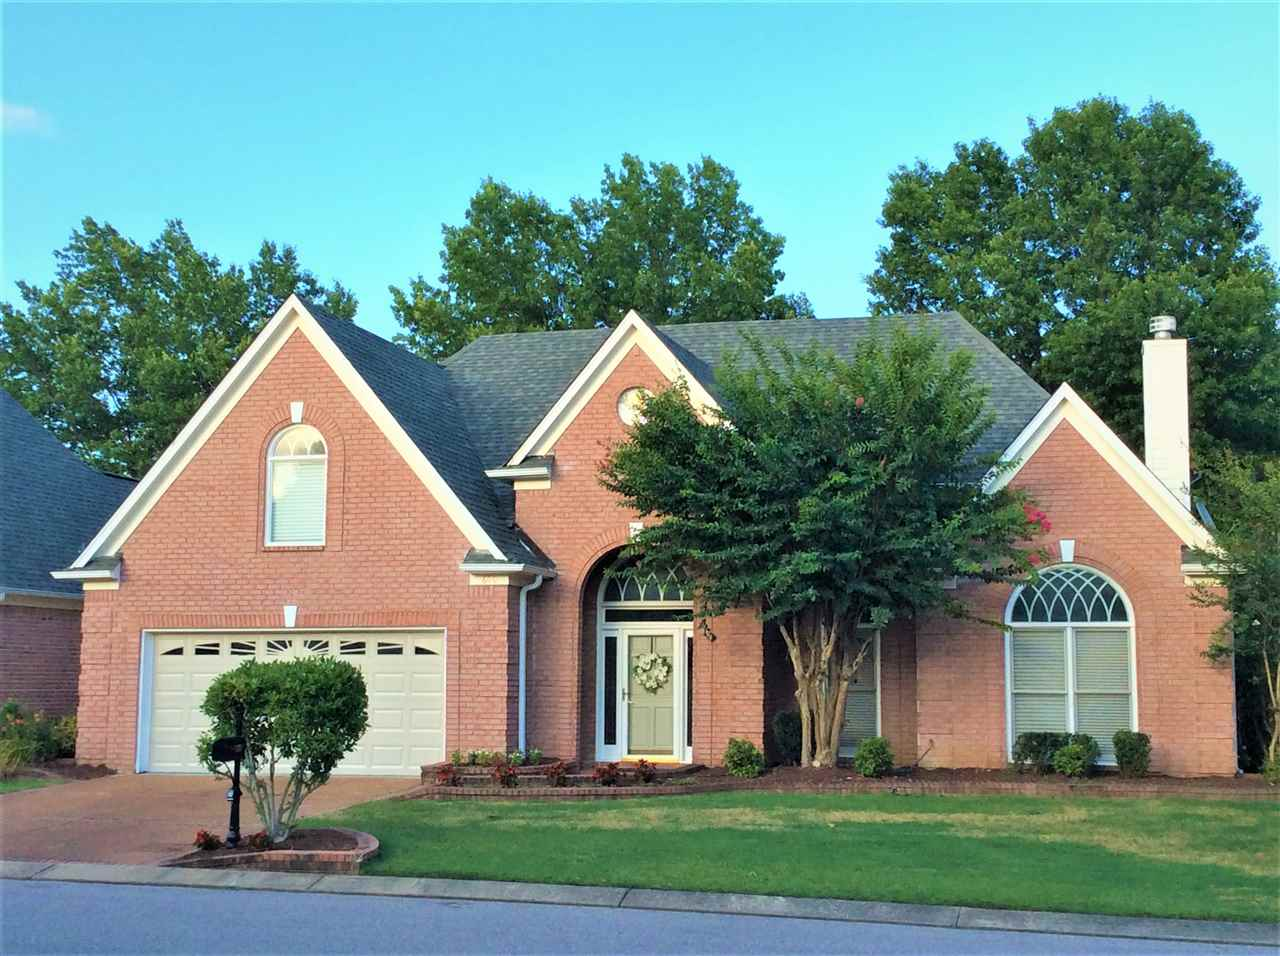 650 Warwick Oaks Collierville, TN 38017 - MLS #: 10031237